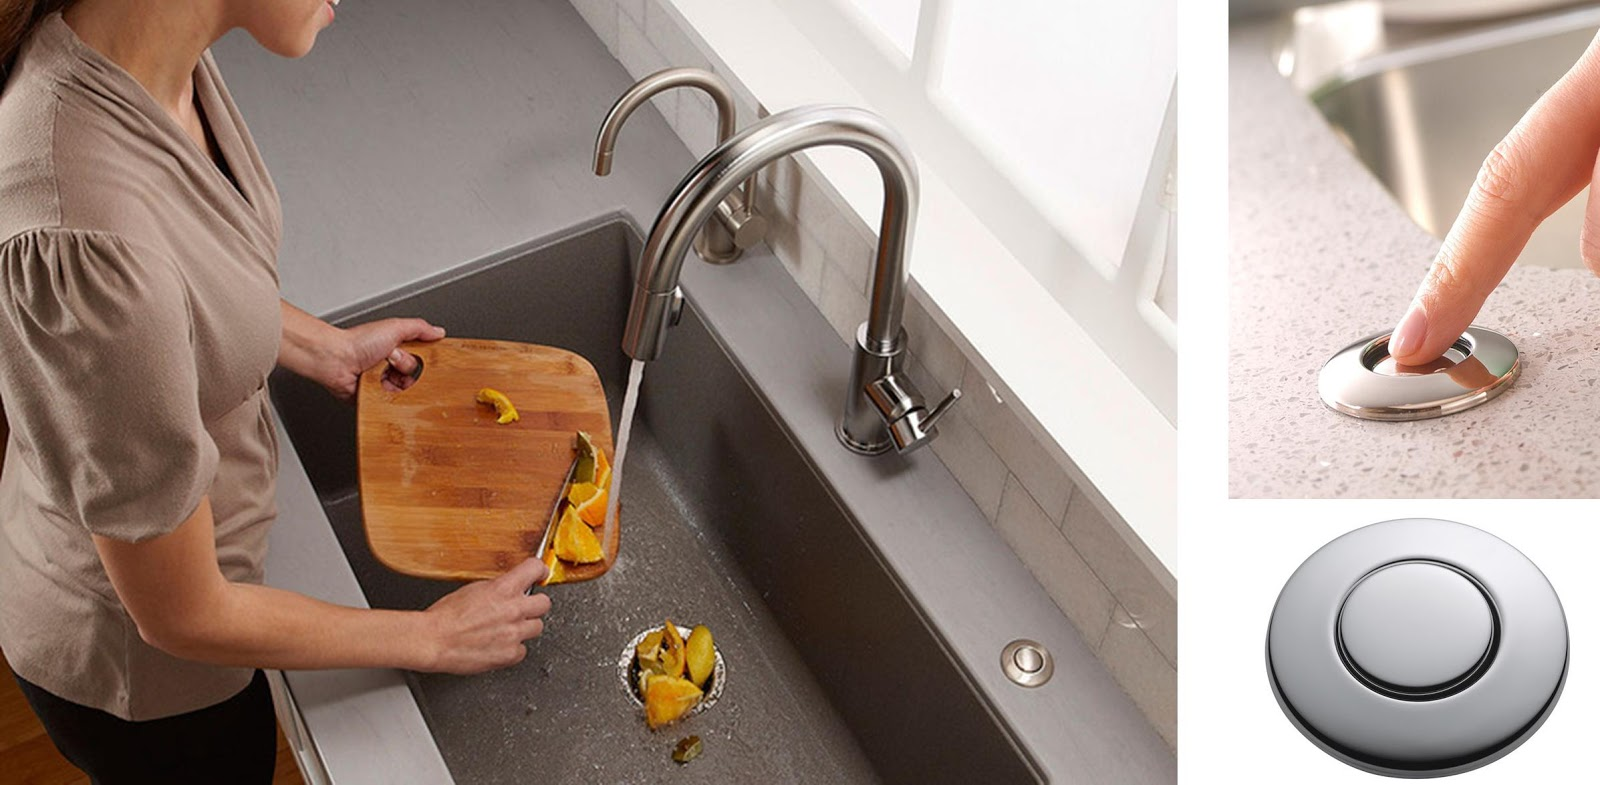 Time2design Custom Cabinetry And Interior Design Kitchen Bath Garbage Disposal Decorator Switch The Stylish Sinktop Is Air Activated Easily Mounts To Sink Or Countertop